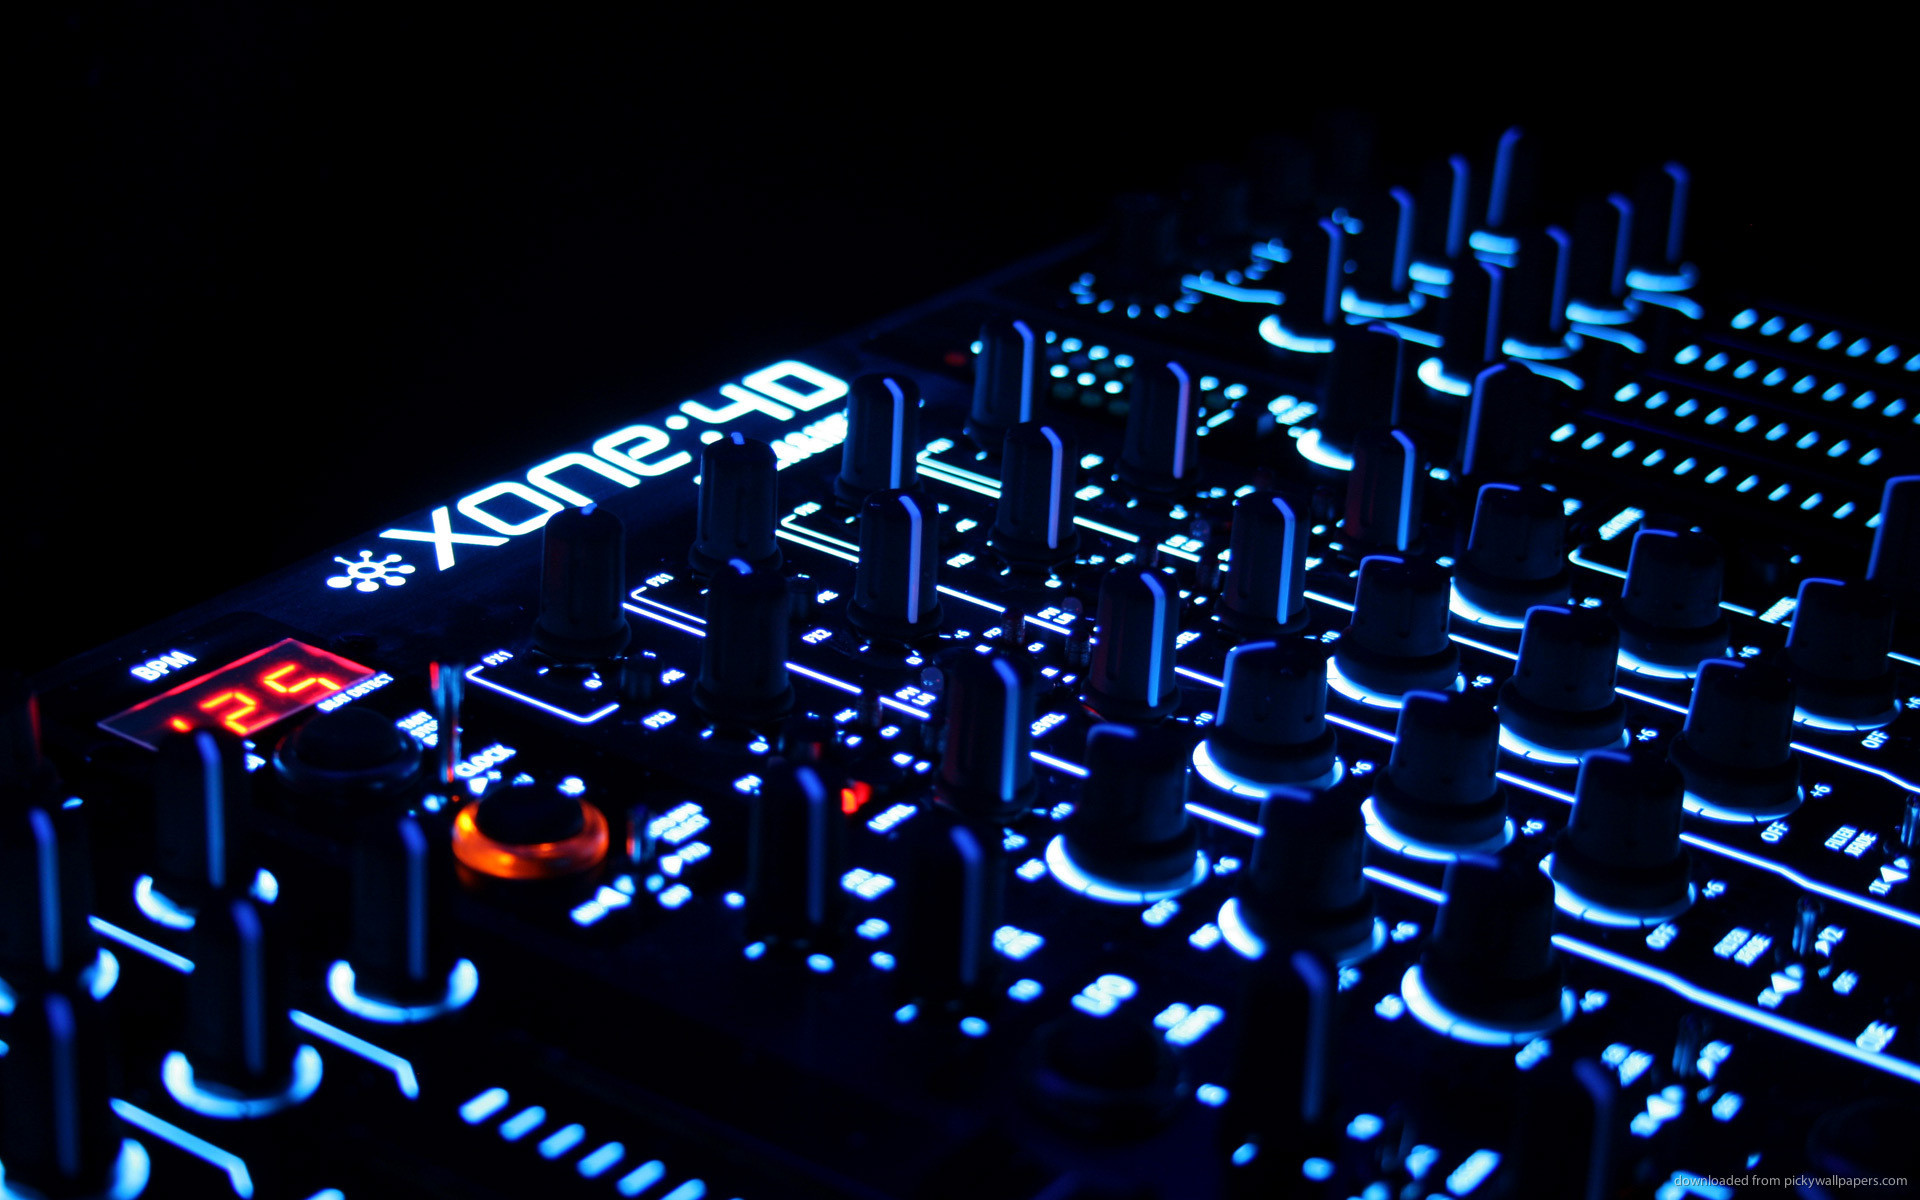 Music DJ Wallpapers HD – https://wallawy.com/music-dj